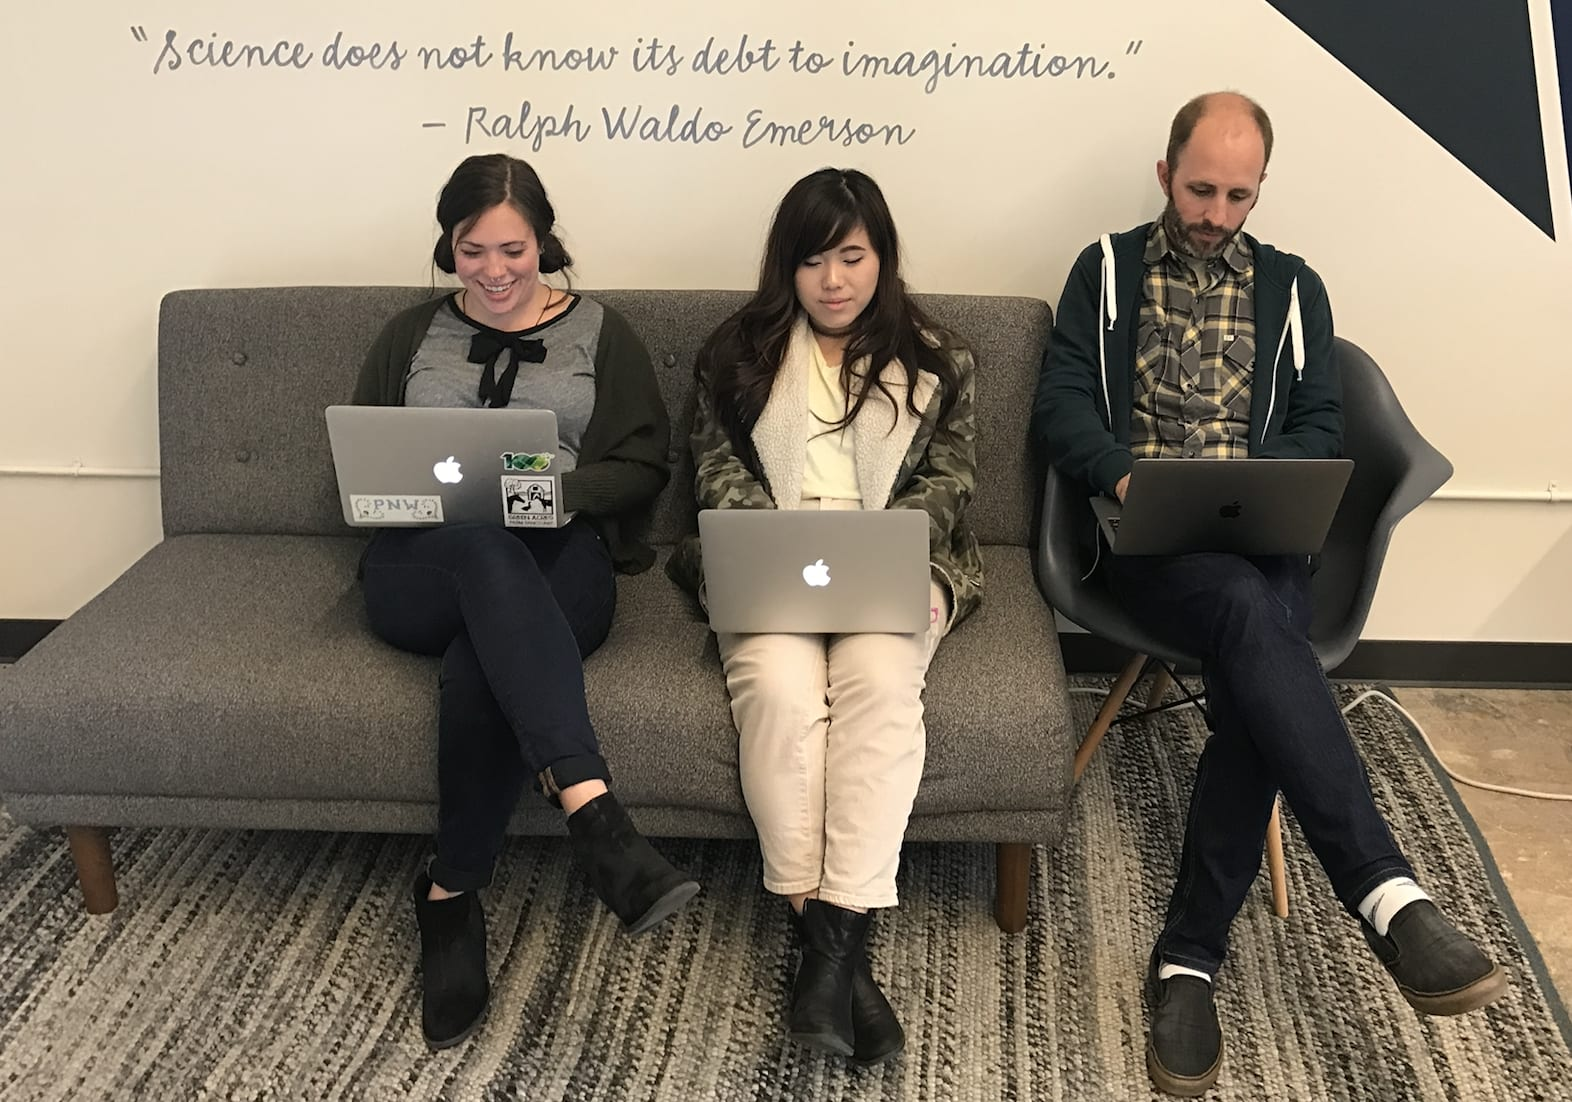 roboboogie team collaborating in the office